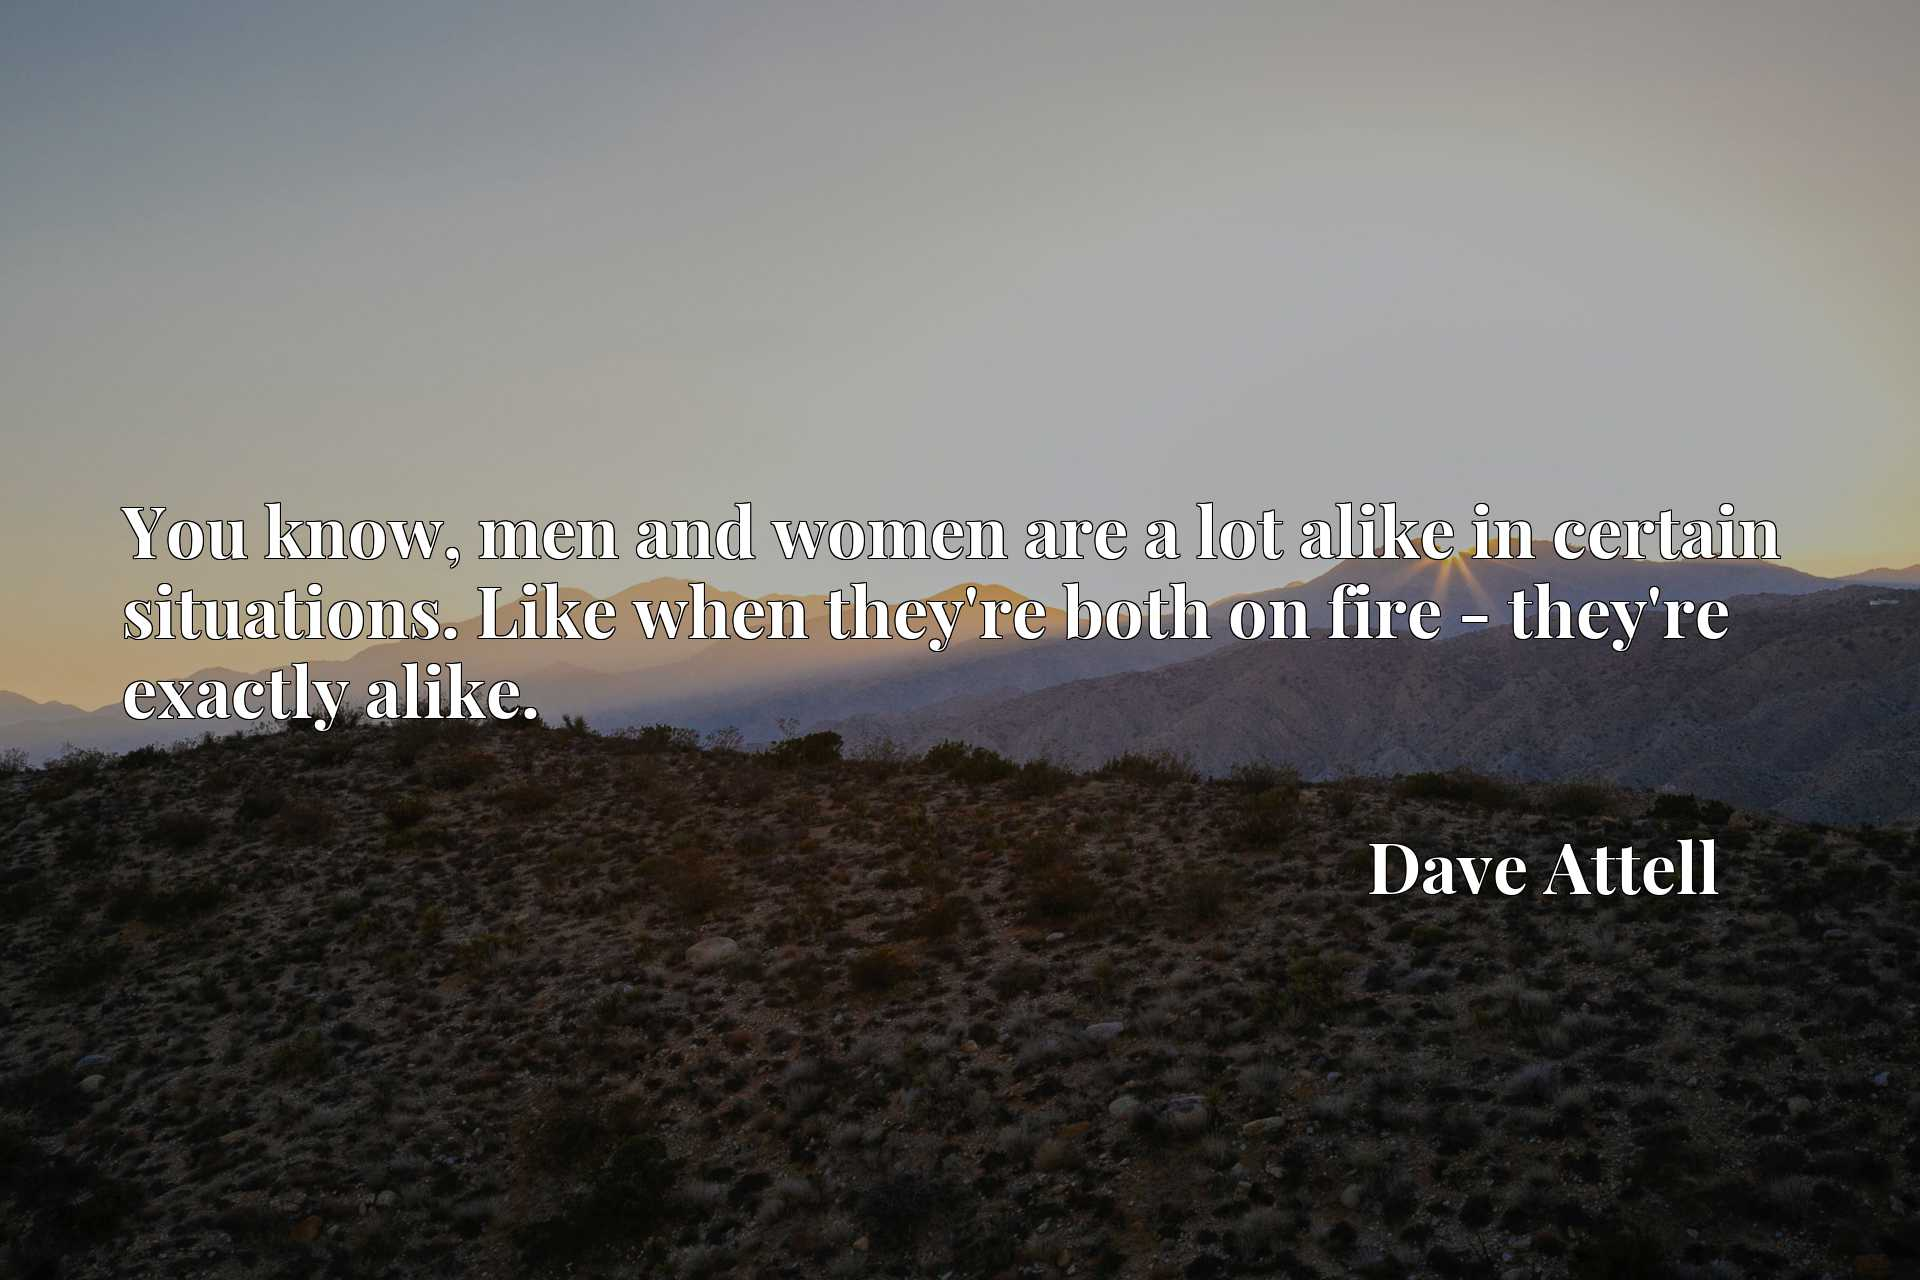 You know, men and women are a lot alike in certain situations. Like when they're both on fire - they're exactly alike.